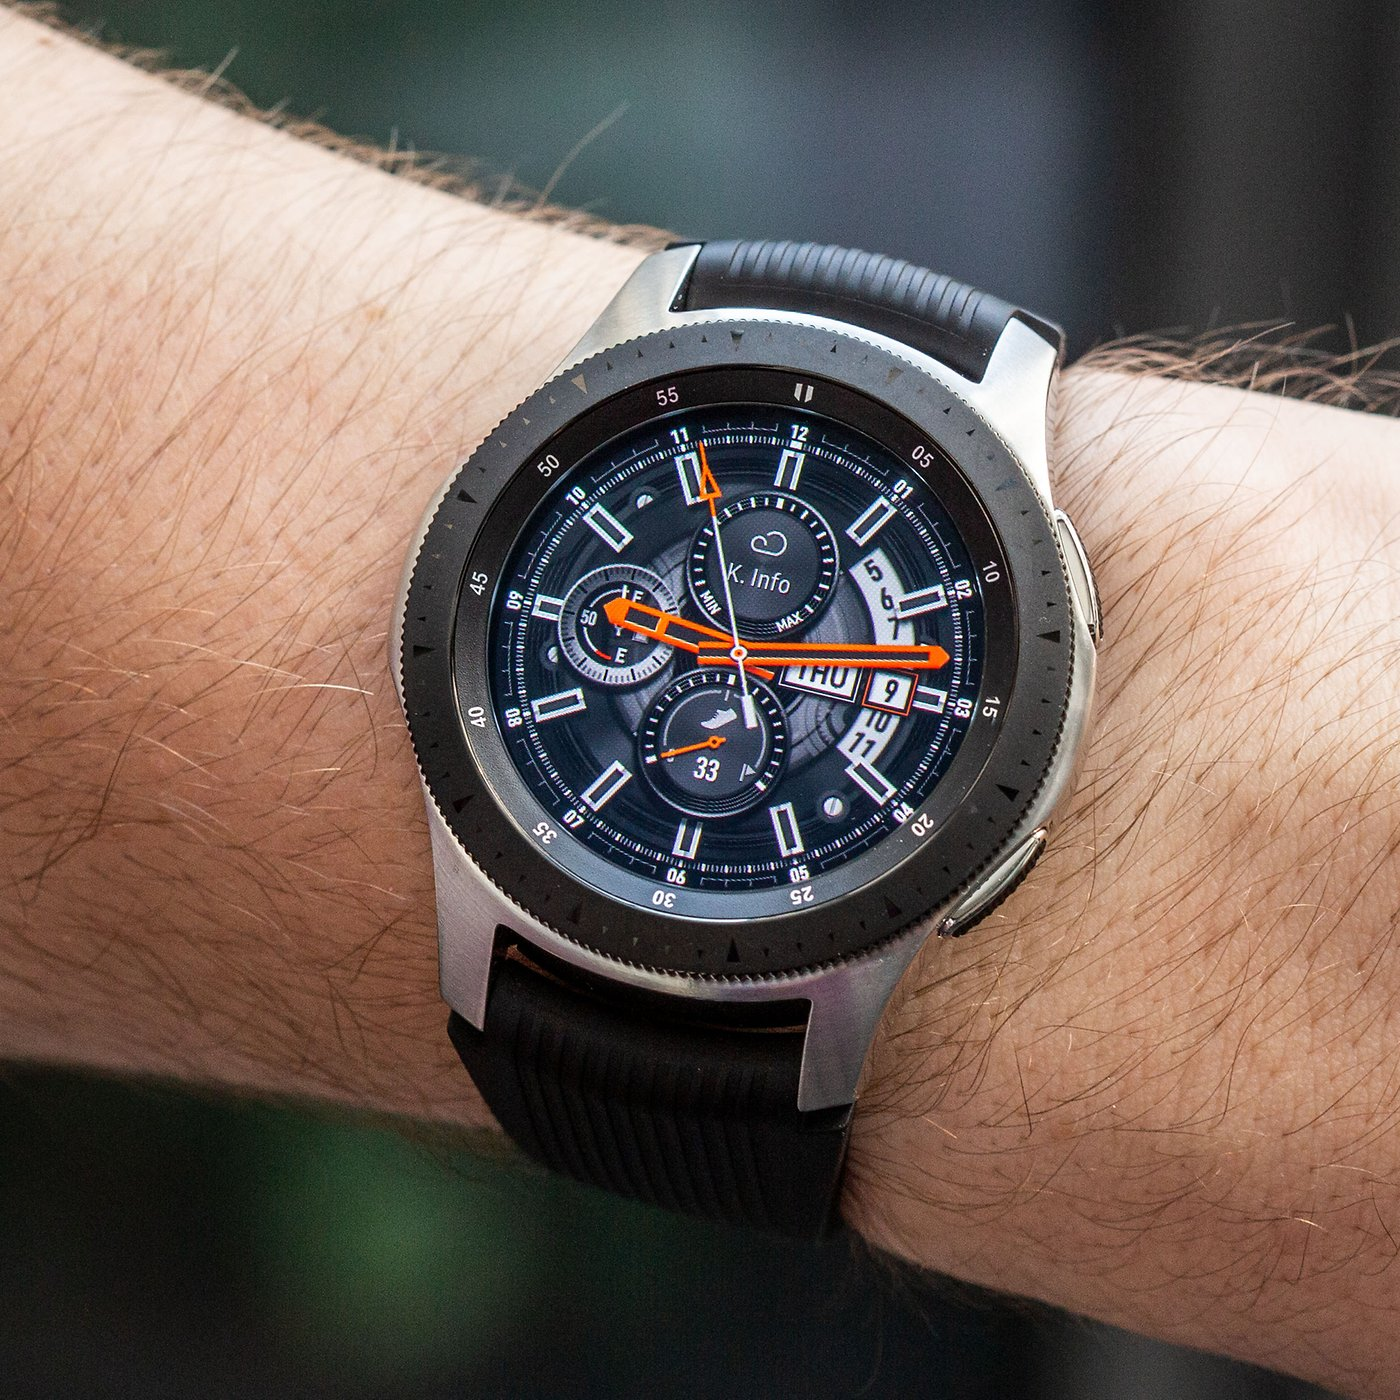 c2097505ebc Samsung Galaxy Watch  the premier Android smartwatch